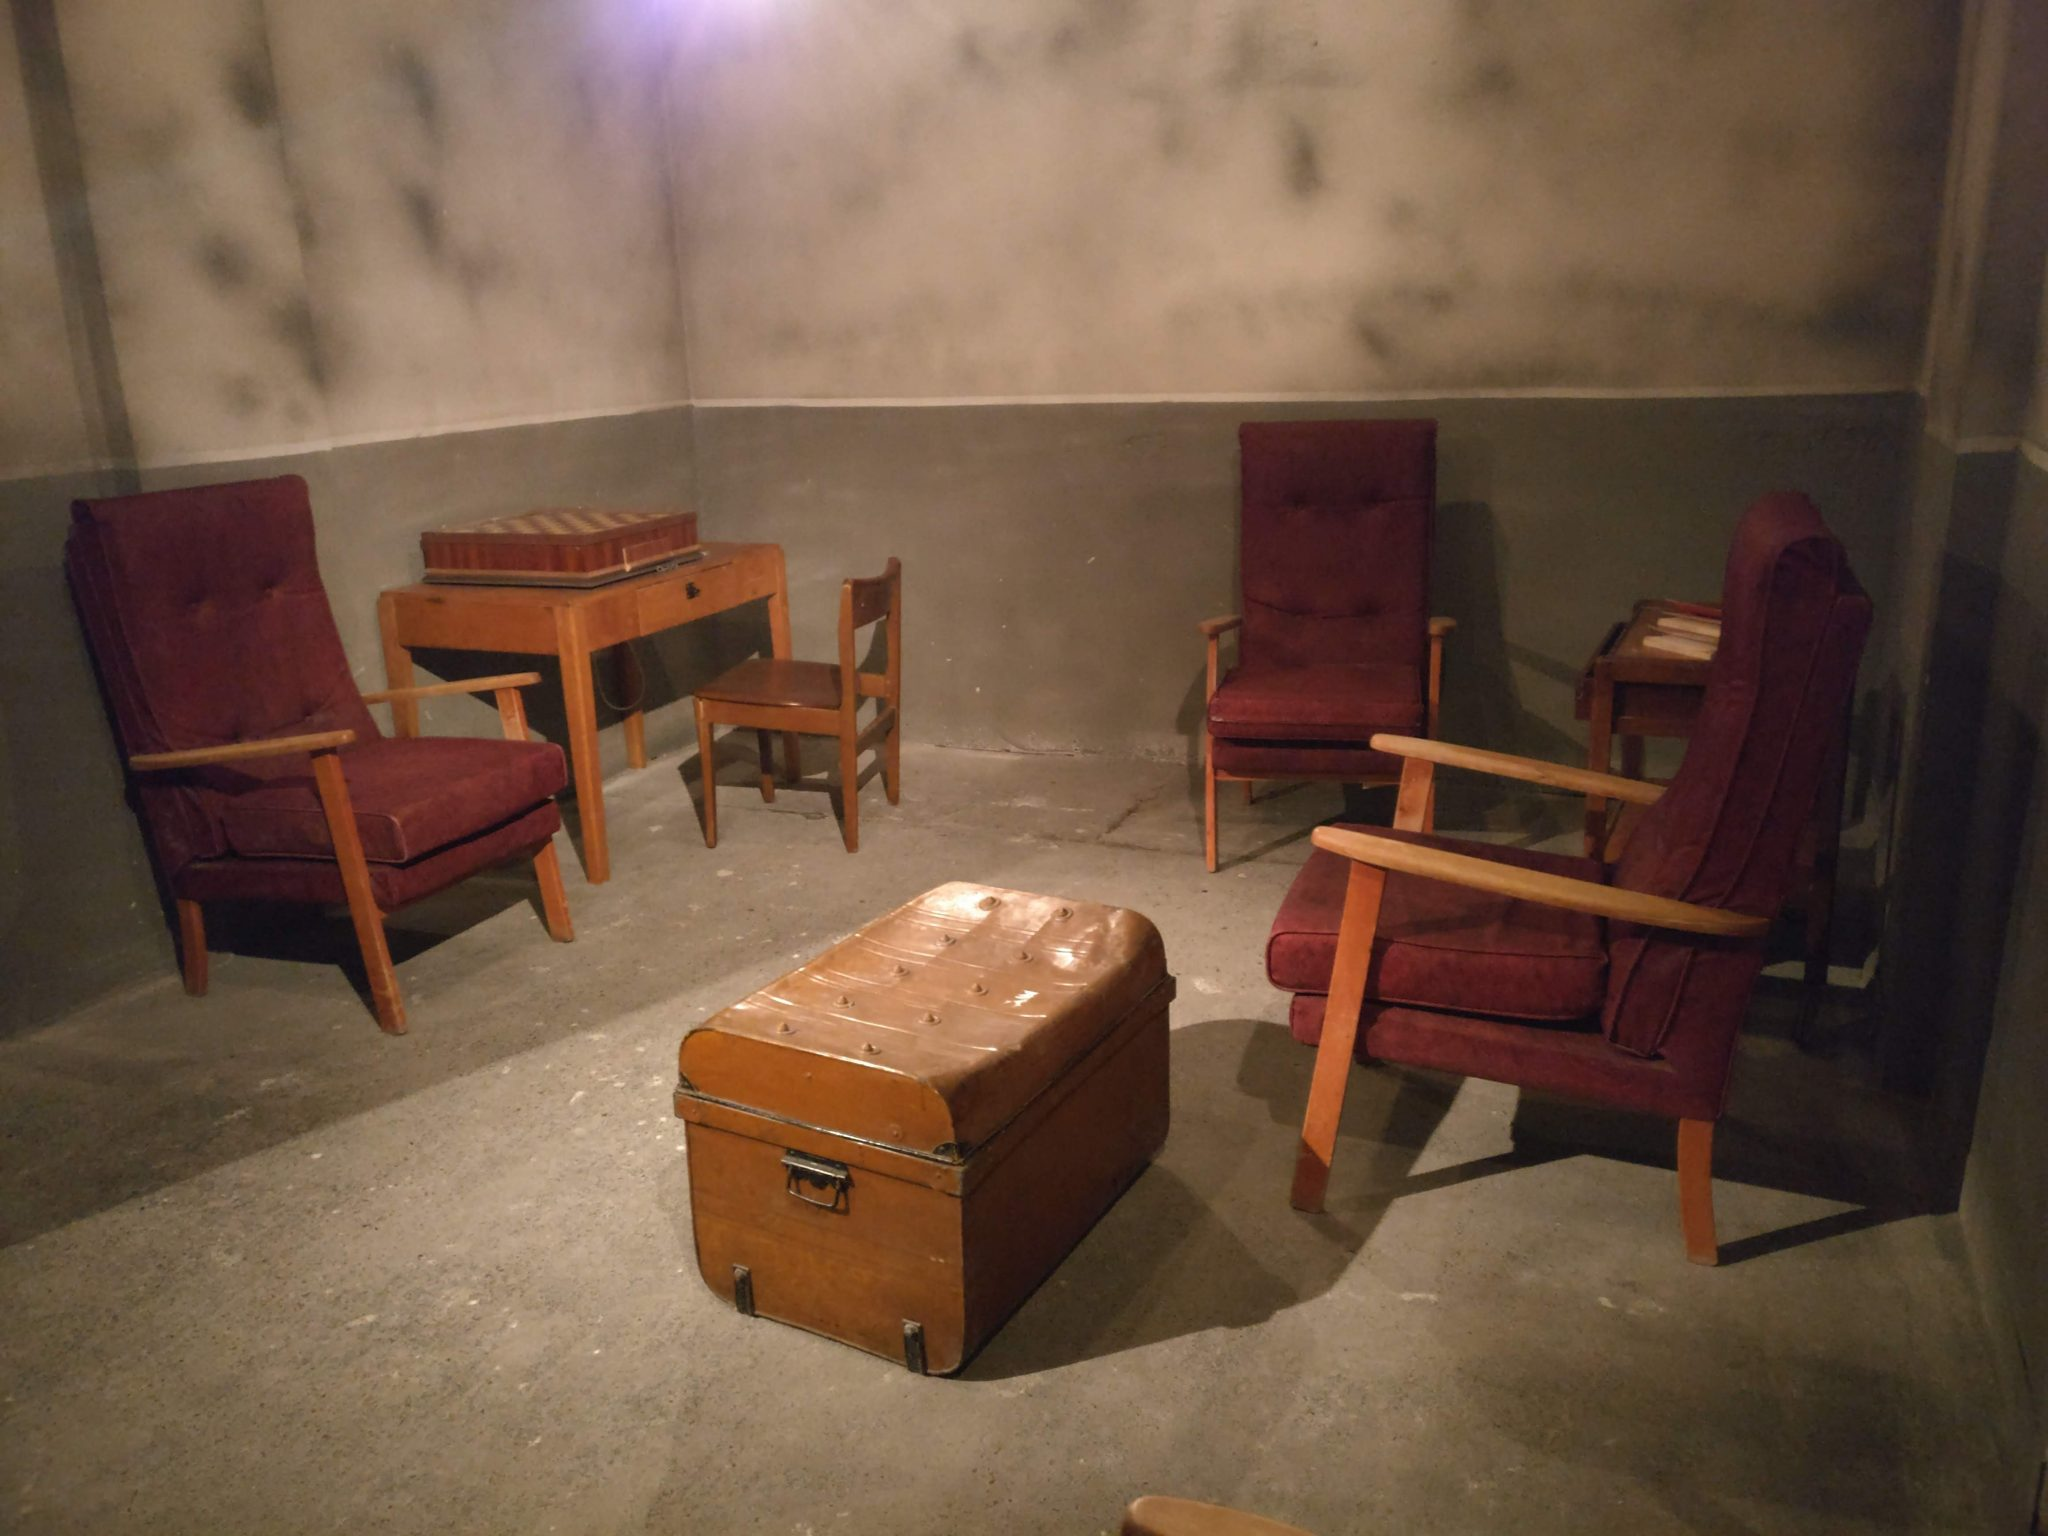 Another of the rooms within Bedlam escape room